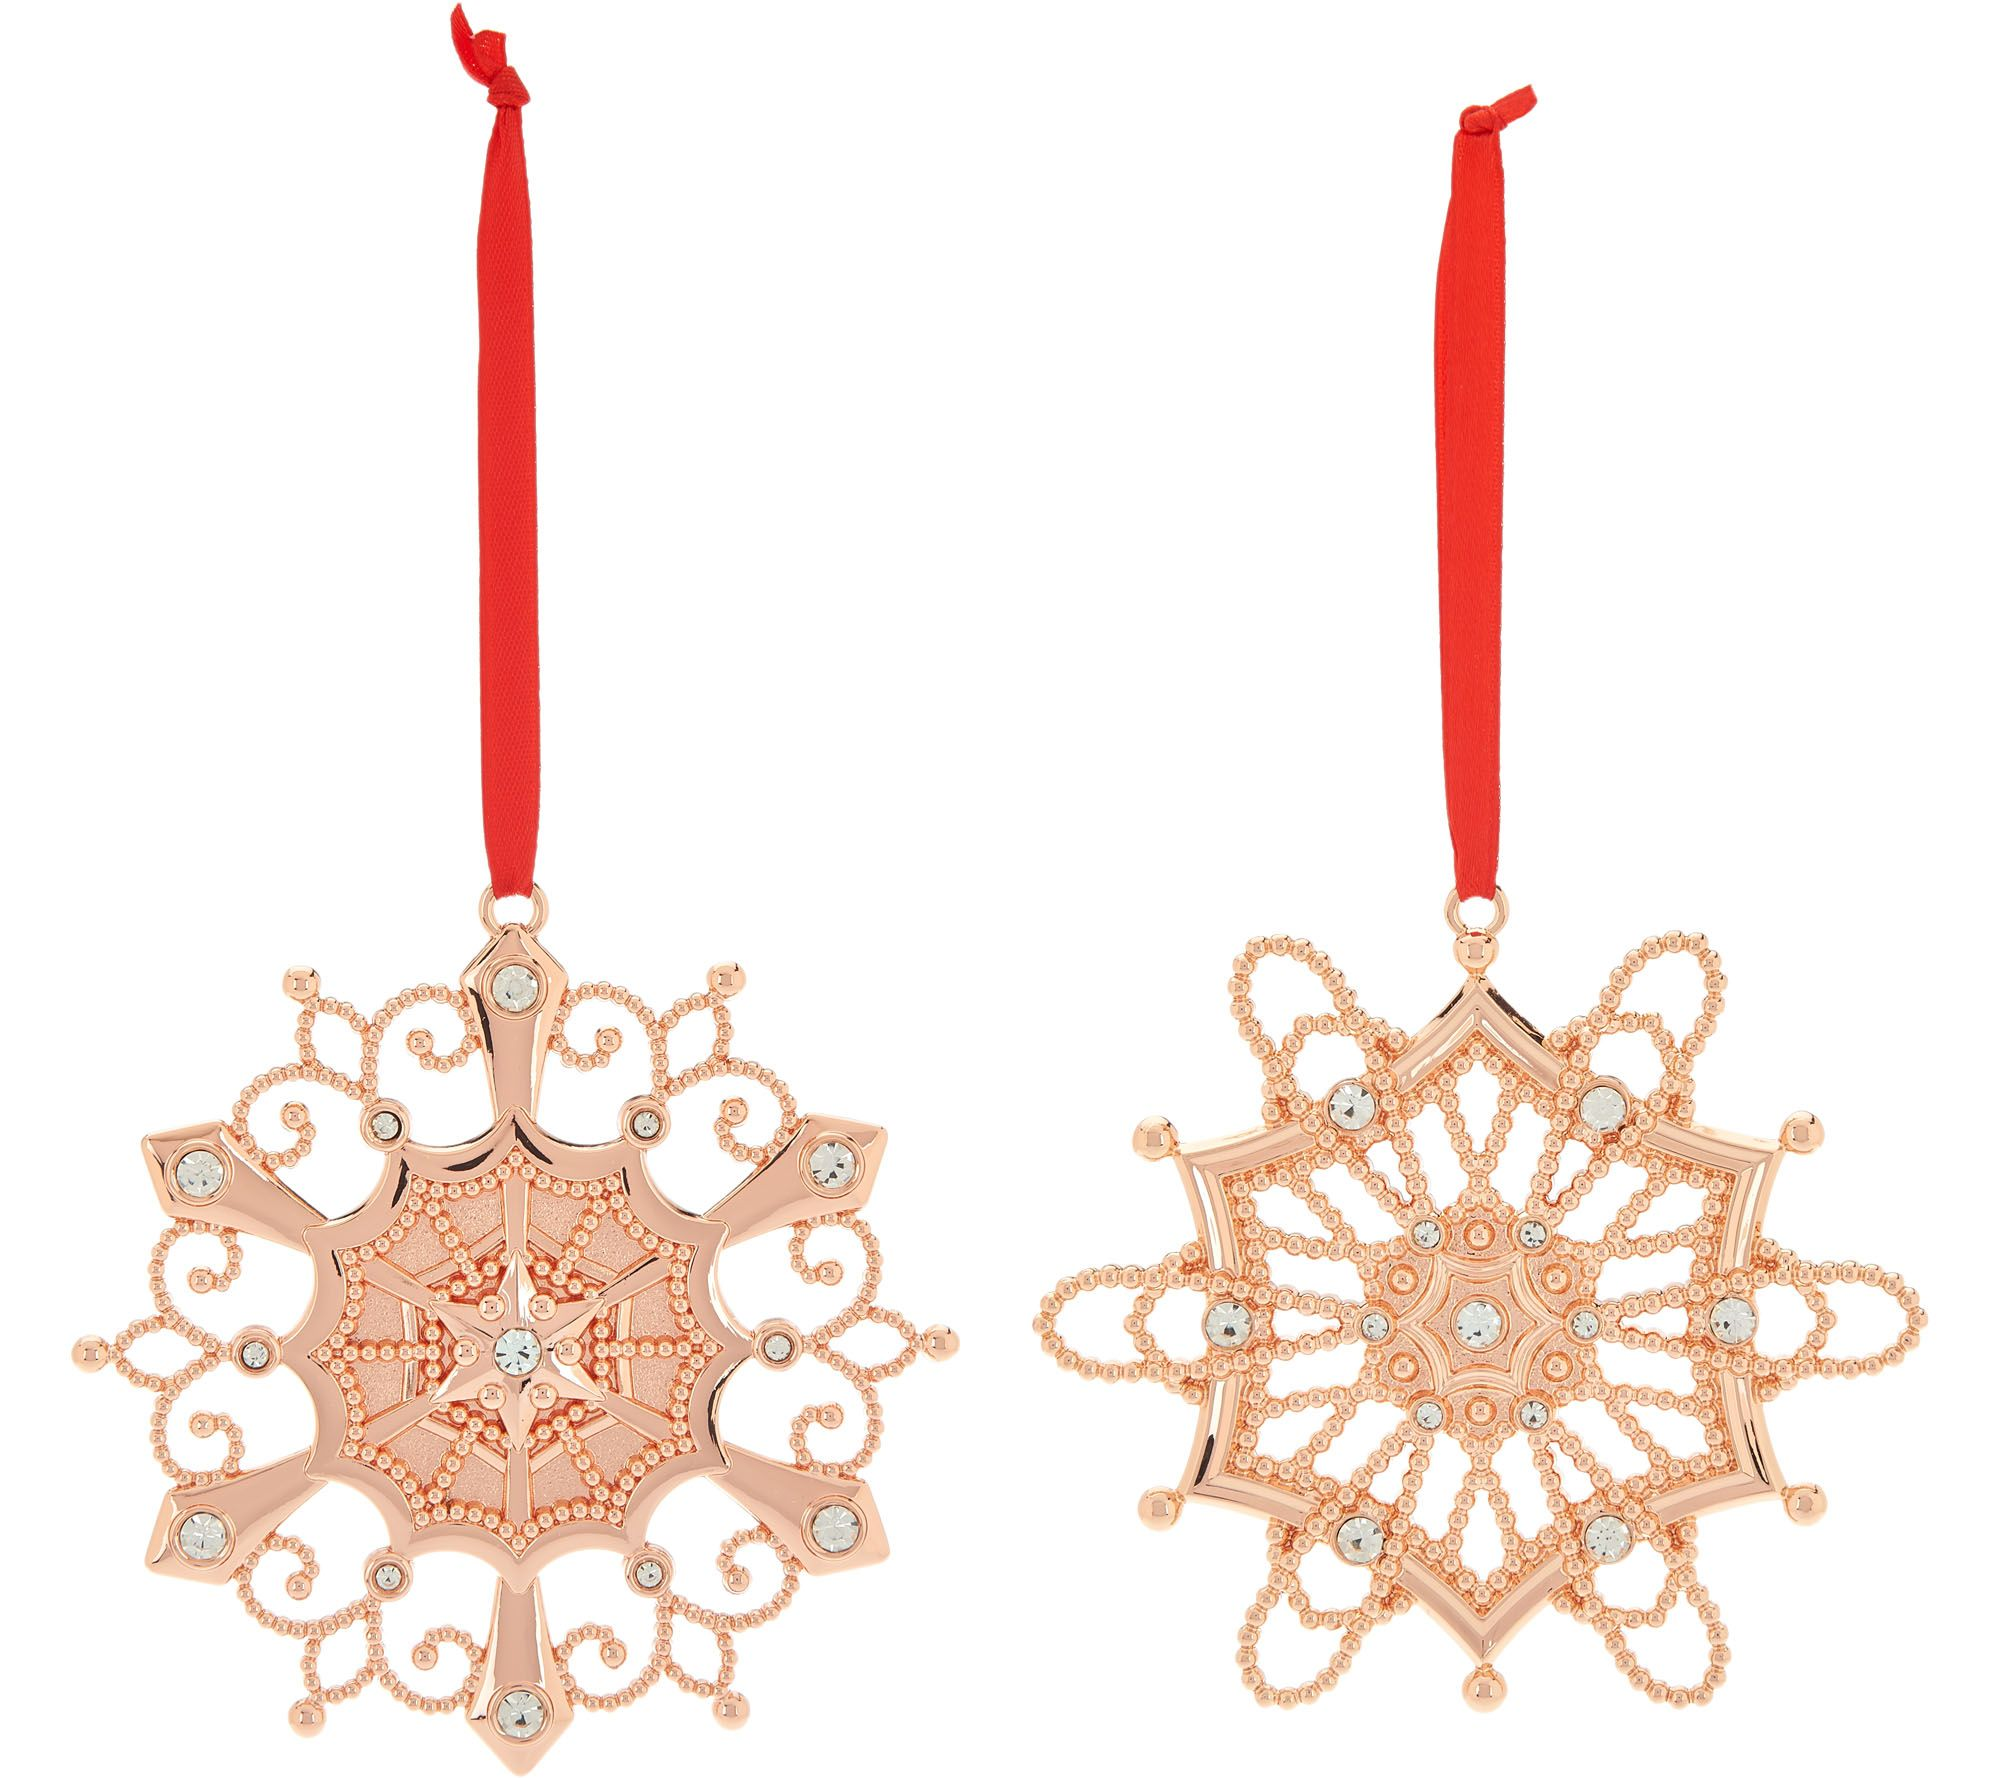 Glass christmas tree with ornaments miniature - Lenox Set Of 2 10k Gold Plated Snowflake Ornaments With Crystal Gems H208482